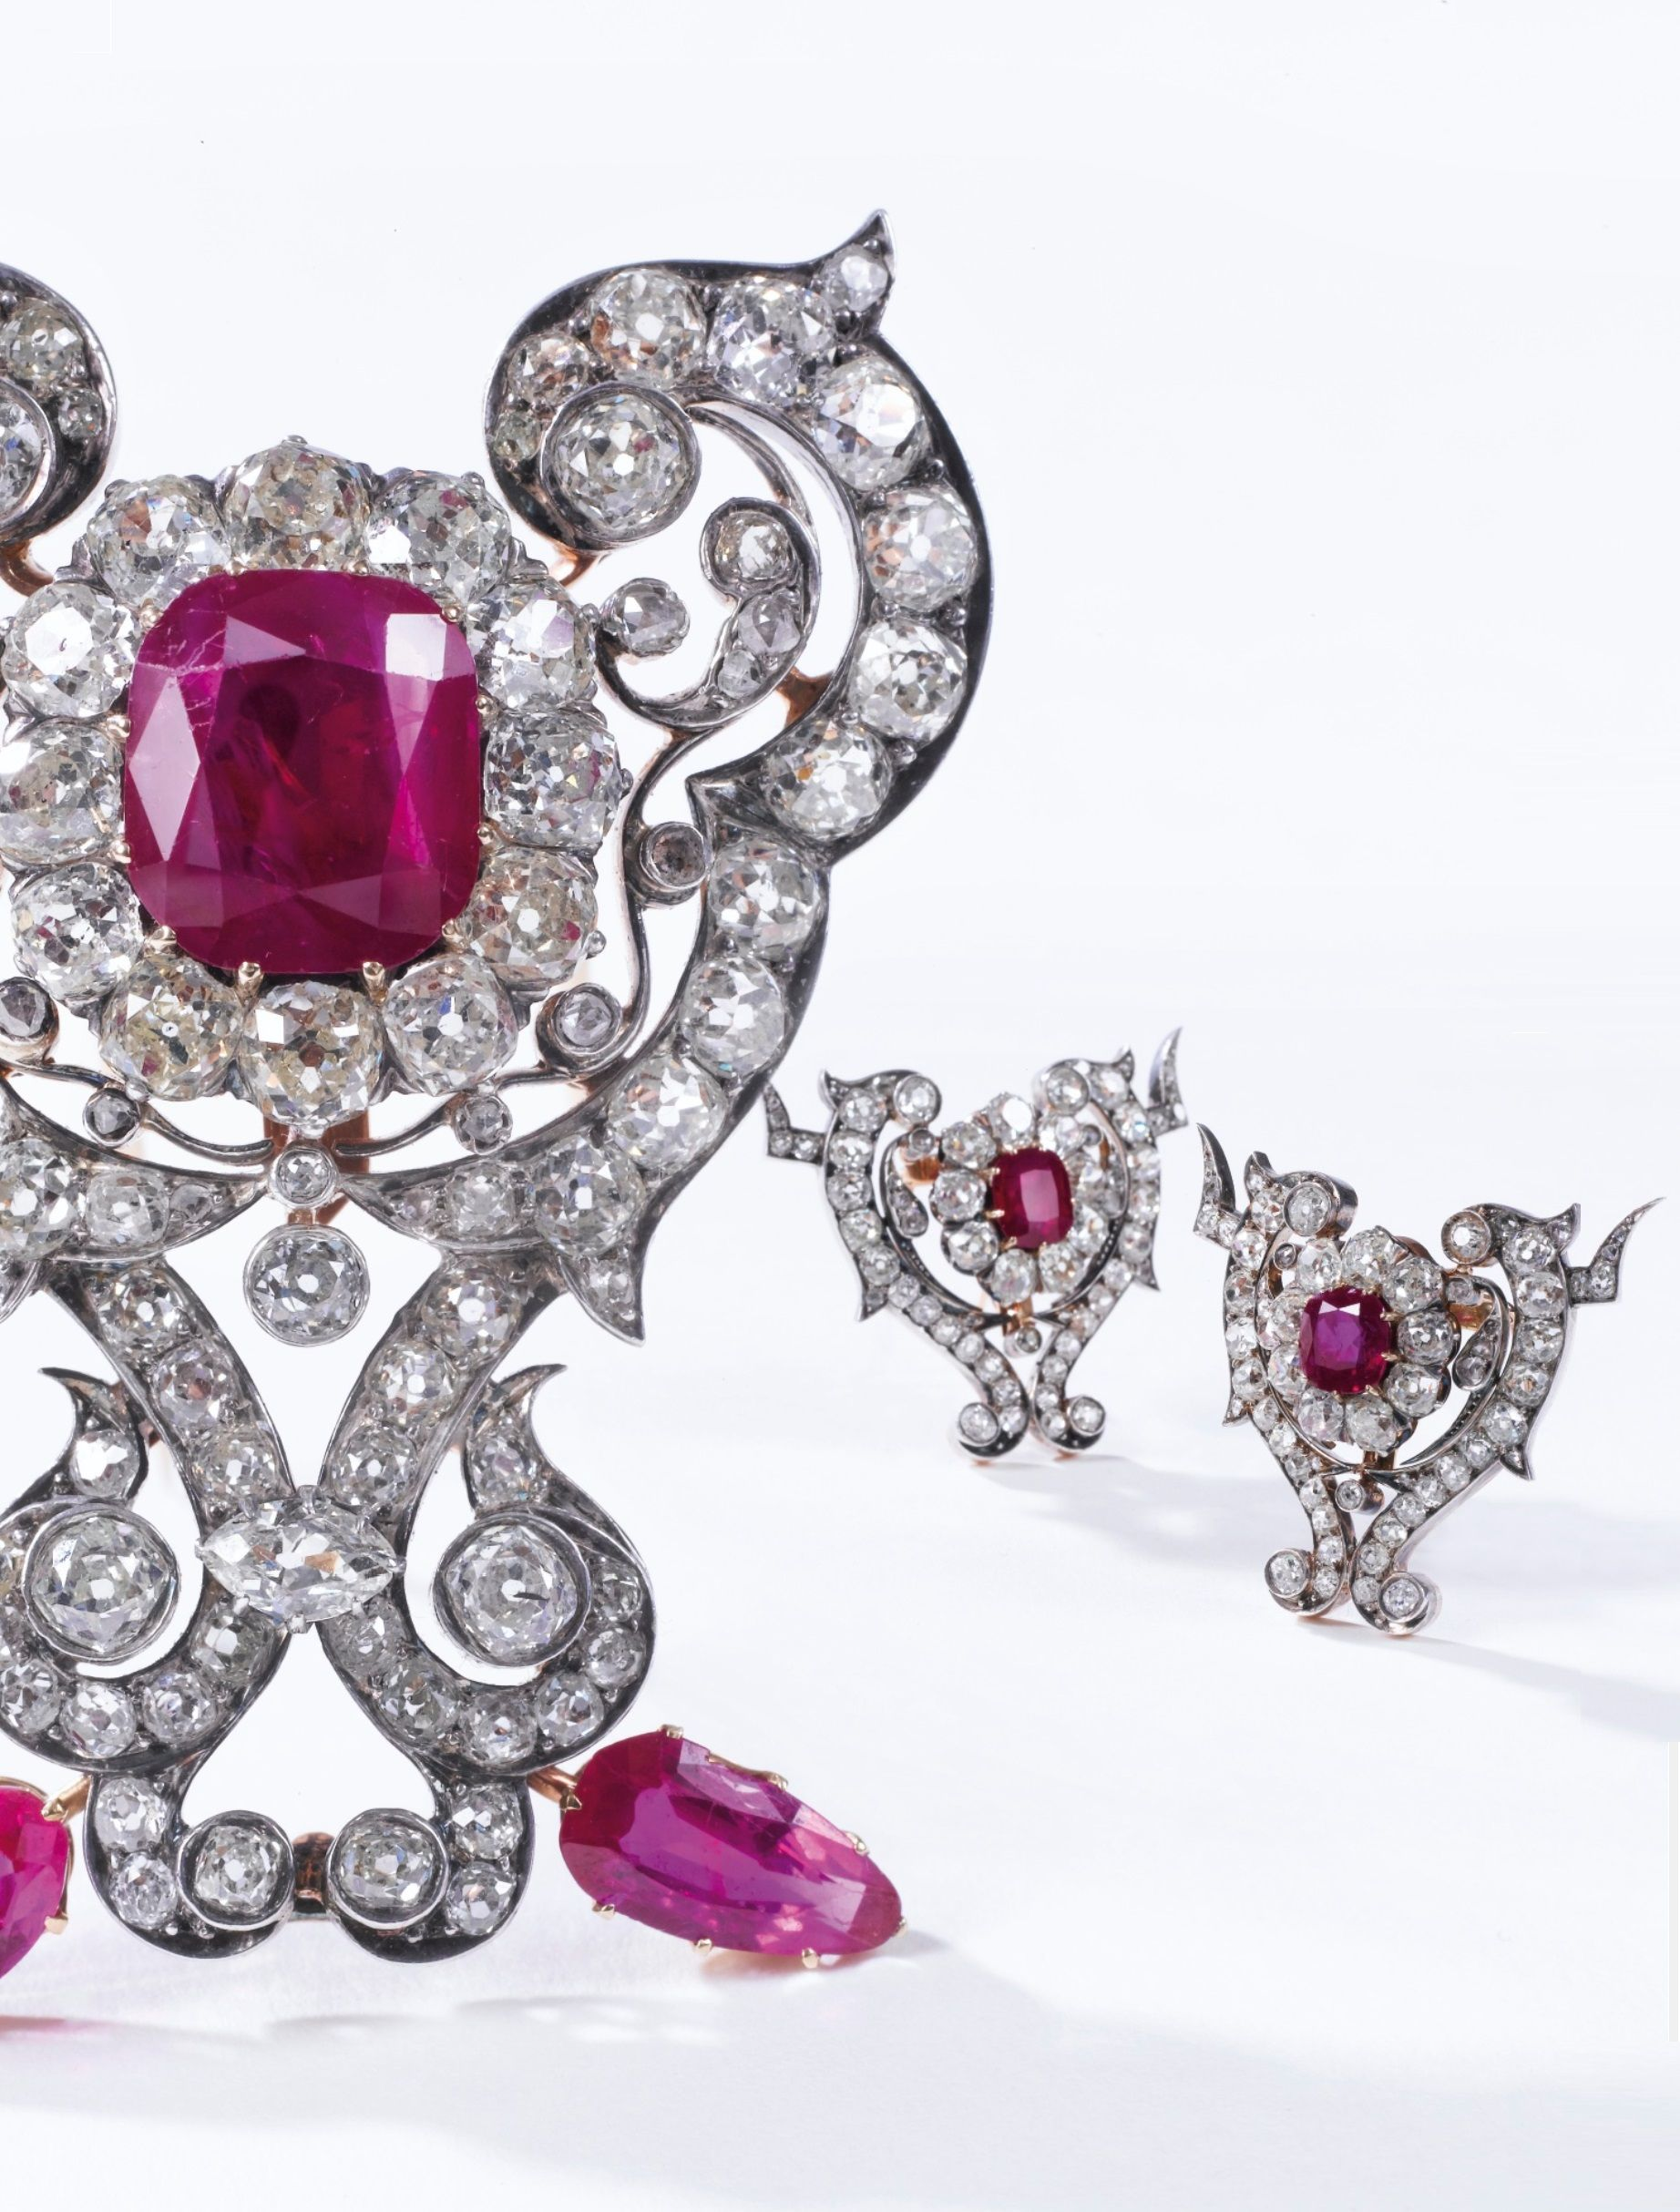 Three antique ruby and diamond brooches, late 19th century. Each of scroll design, set with cushion-, marquise-shaped, circular-, single-cut and rose diamonds, the largest brooch highlighted with a cushion-shaped ruby weighing 7.48 carats and pear- and marquise-shaped rubies, the two others set with a cushion-shaped ruby weighing 3.13 and 3.59 carats respectively, later brooch.